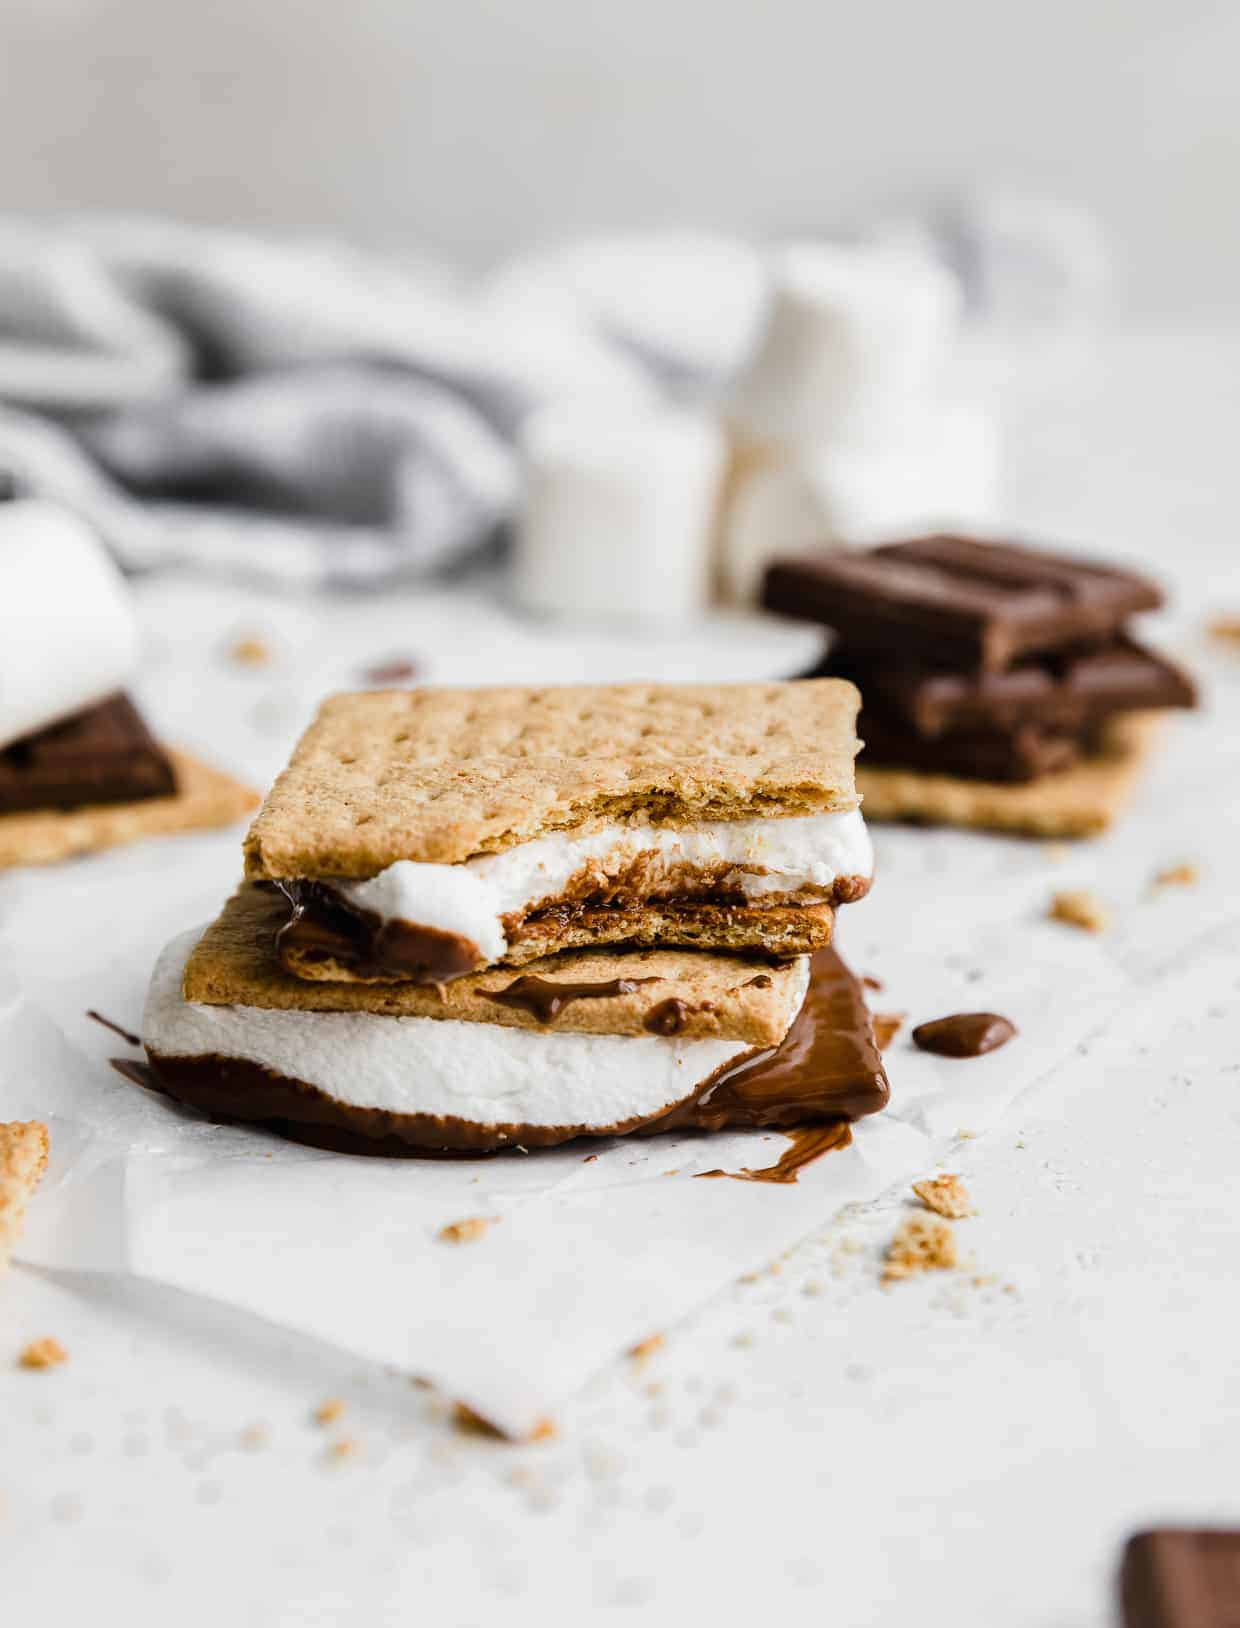 An Oven S'more with a bite taken out of it.